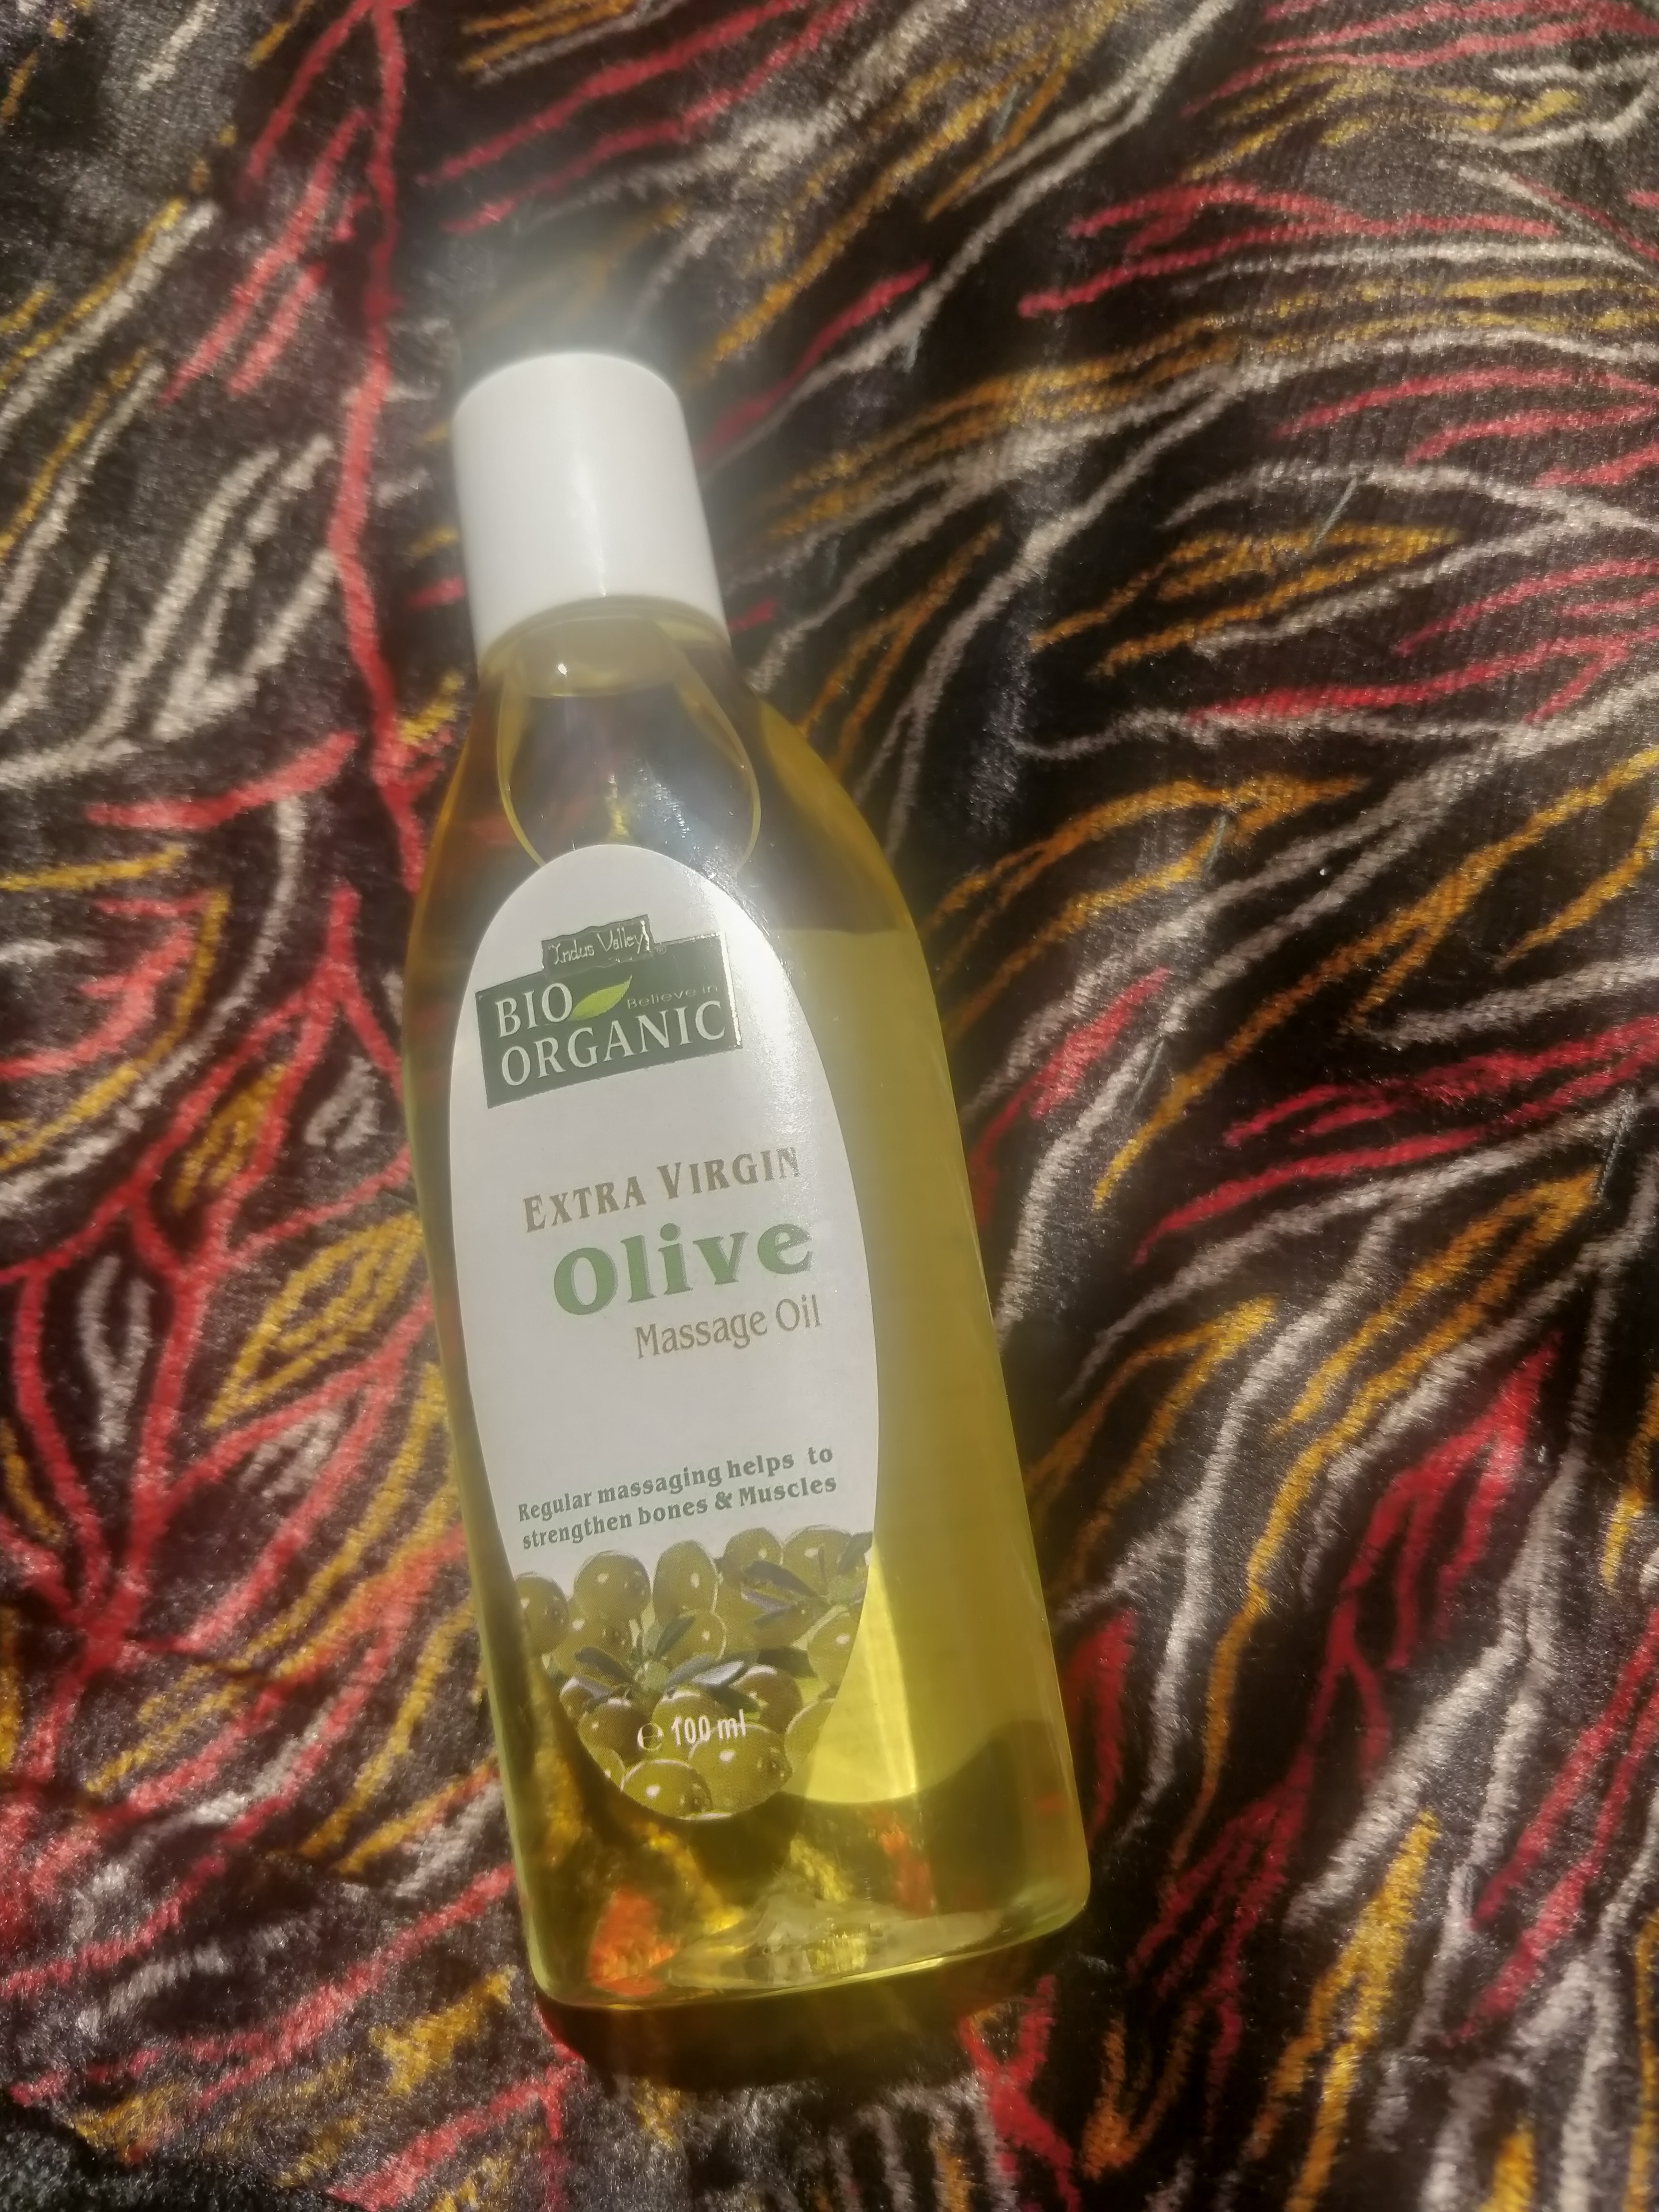 fab-review-Provide soft and silky hair-By sri._.reviwer